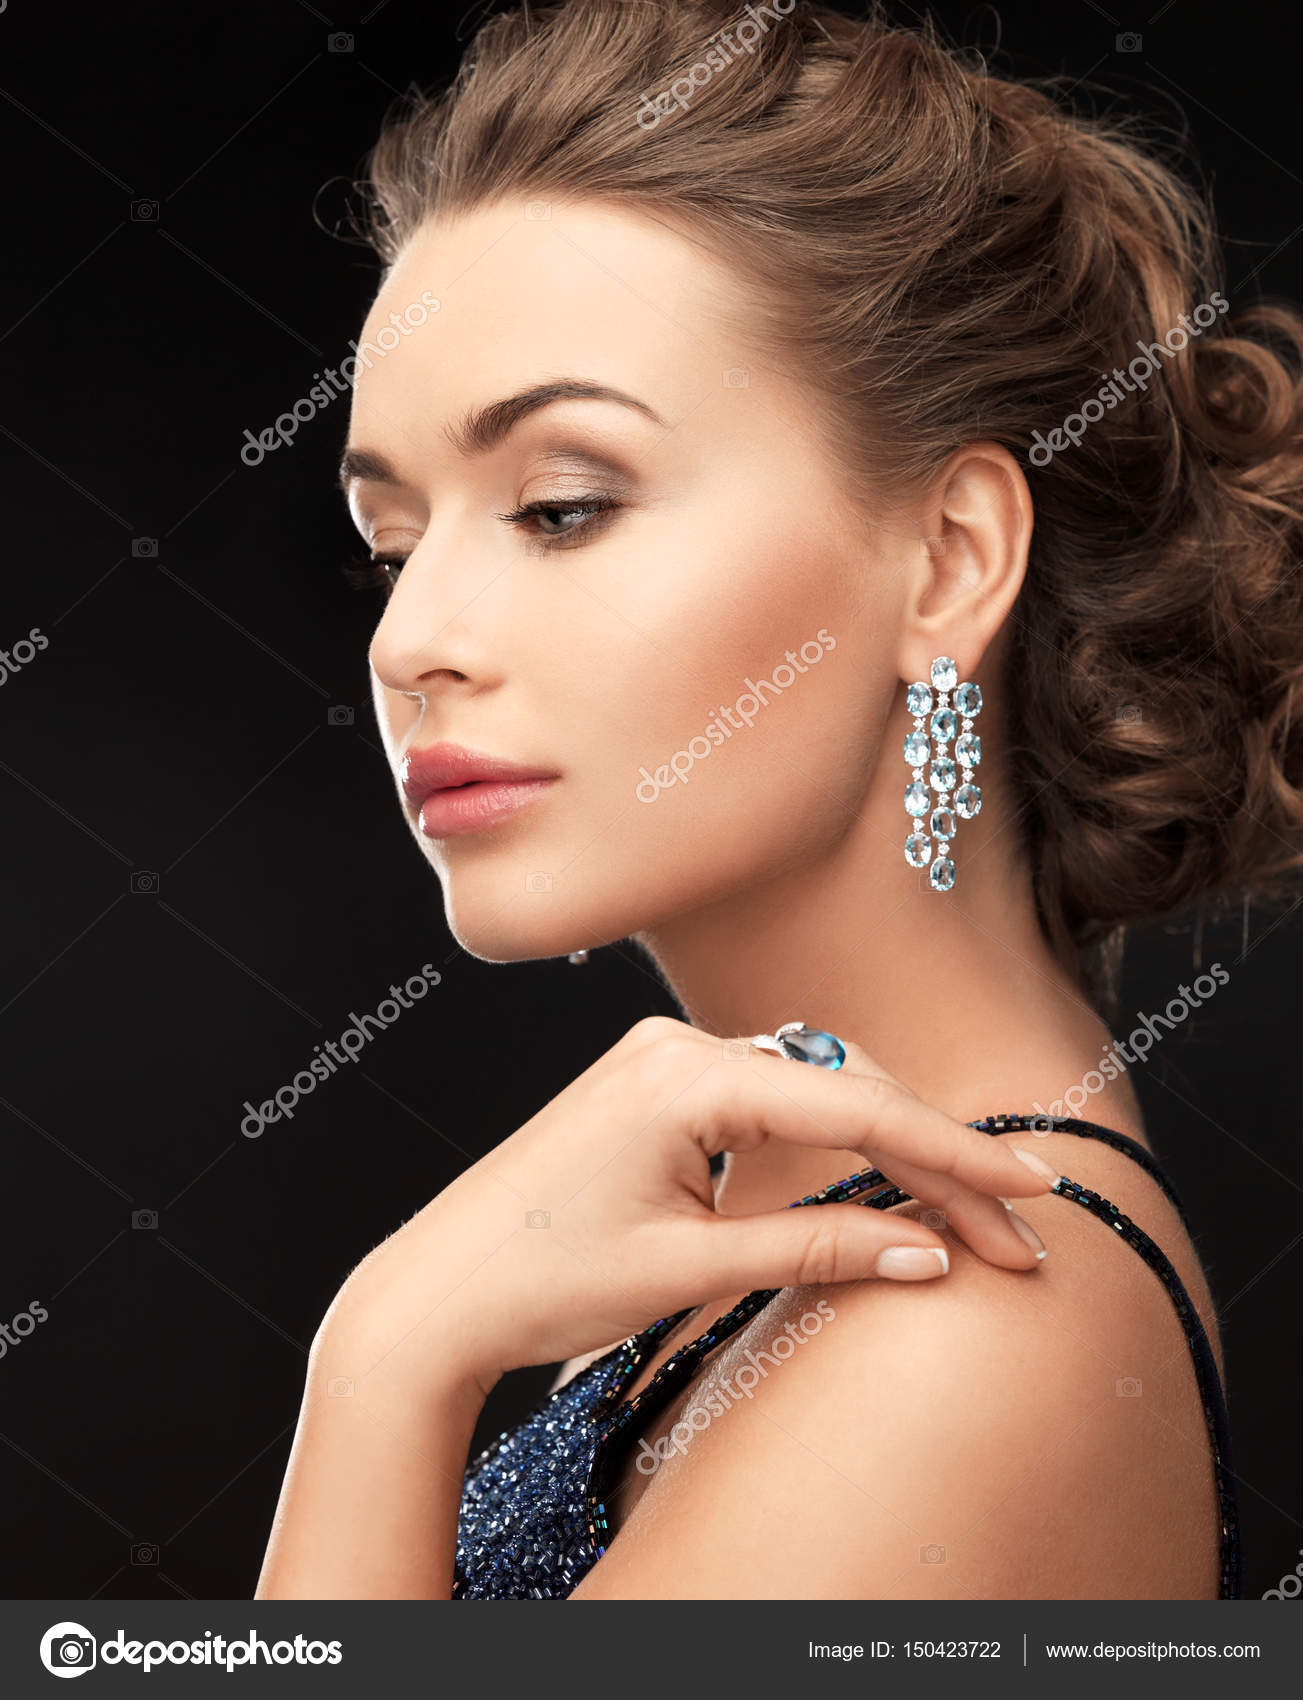 wearing earrings fashion accessories woman